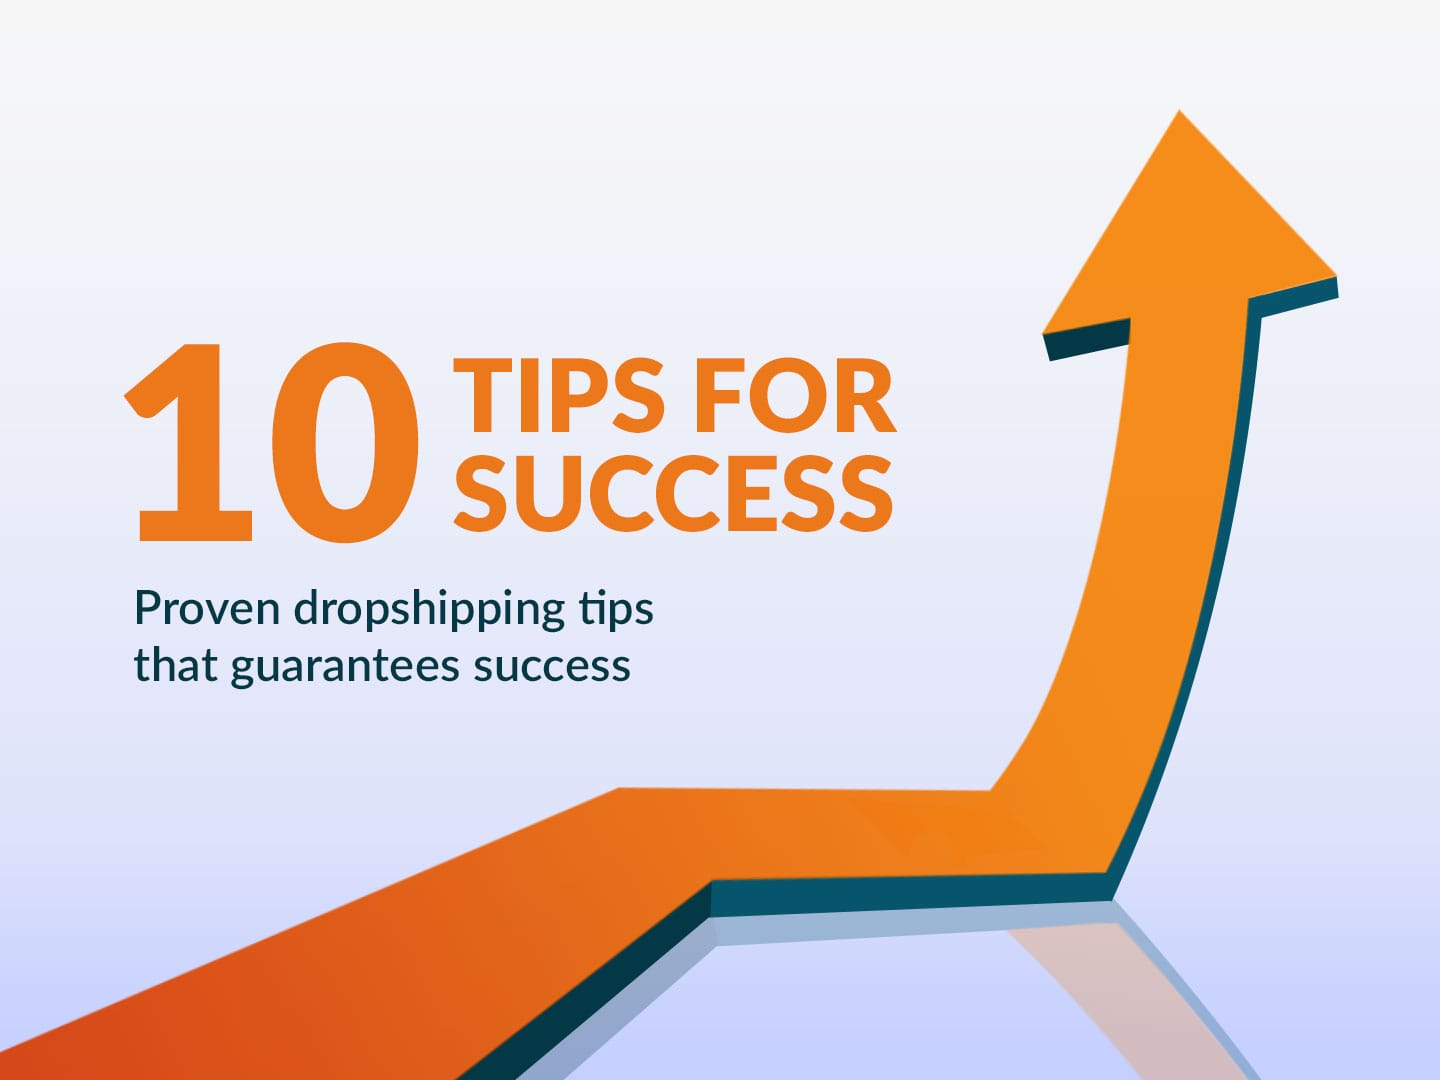 10-PROVEN-DROPSHIPPING-TIPS-THAT-GUARANTEES-SUCCESS